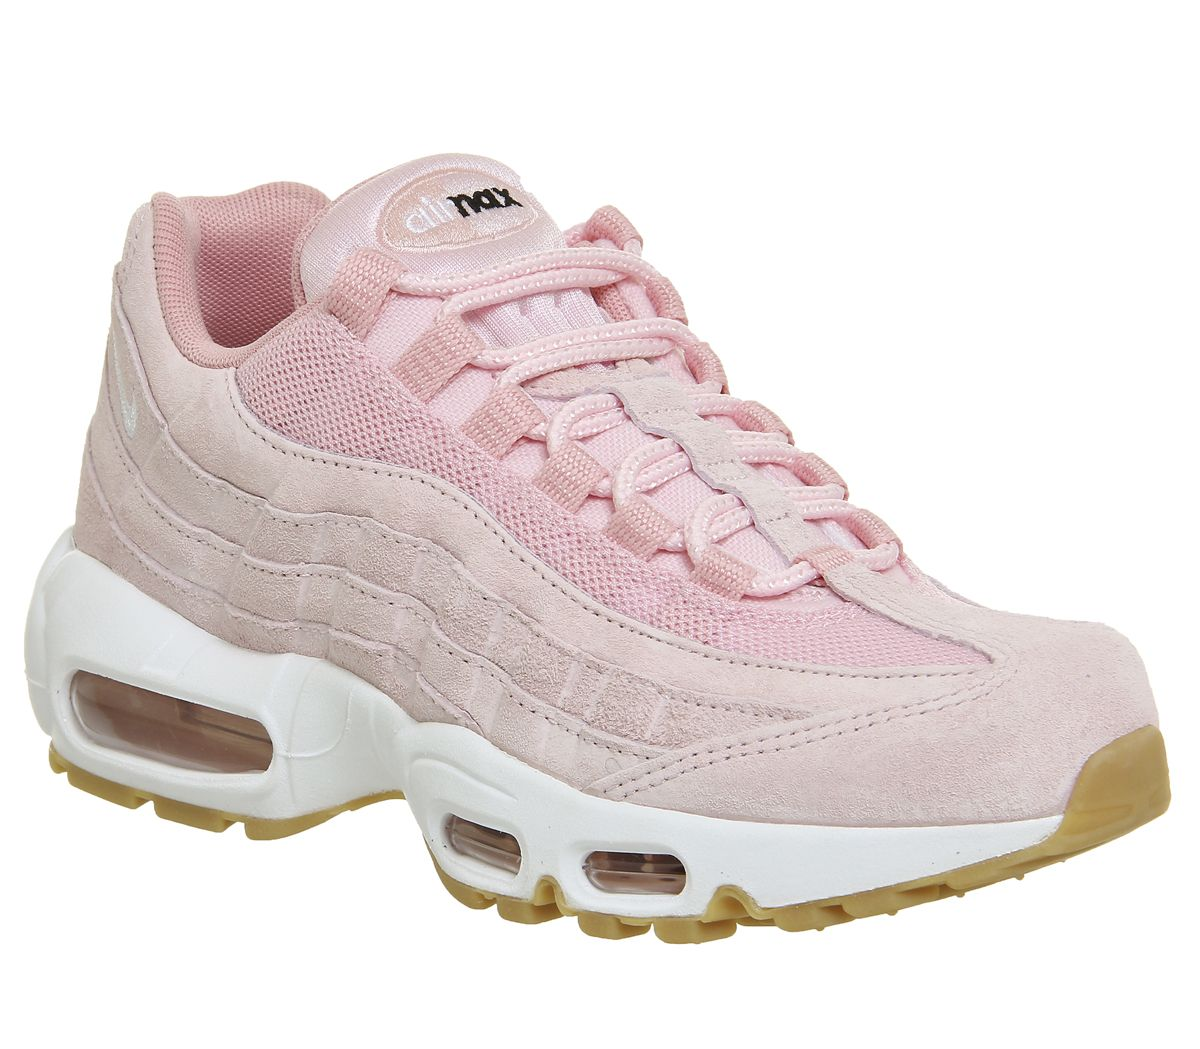 0a6d0e3873c4f Nike Air Max 95 Prism Pink White Sheen - Hers trainers